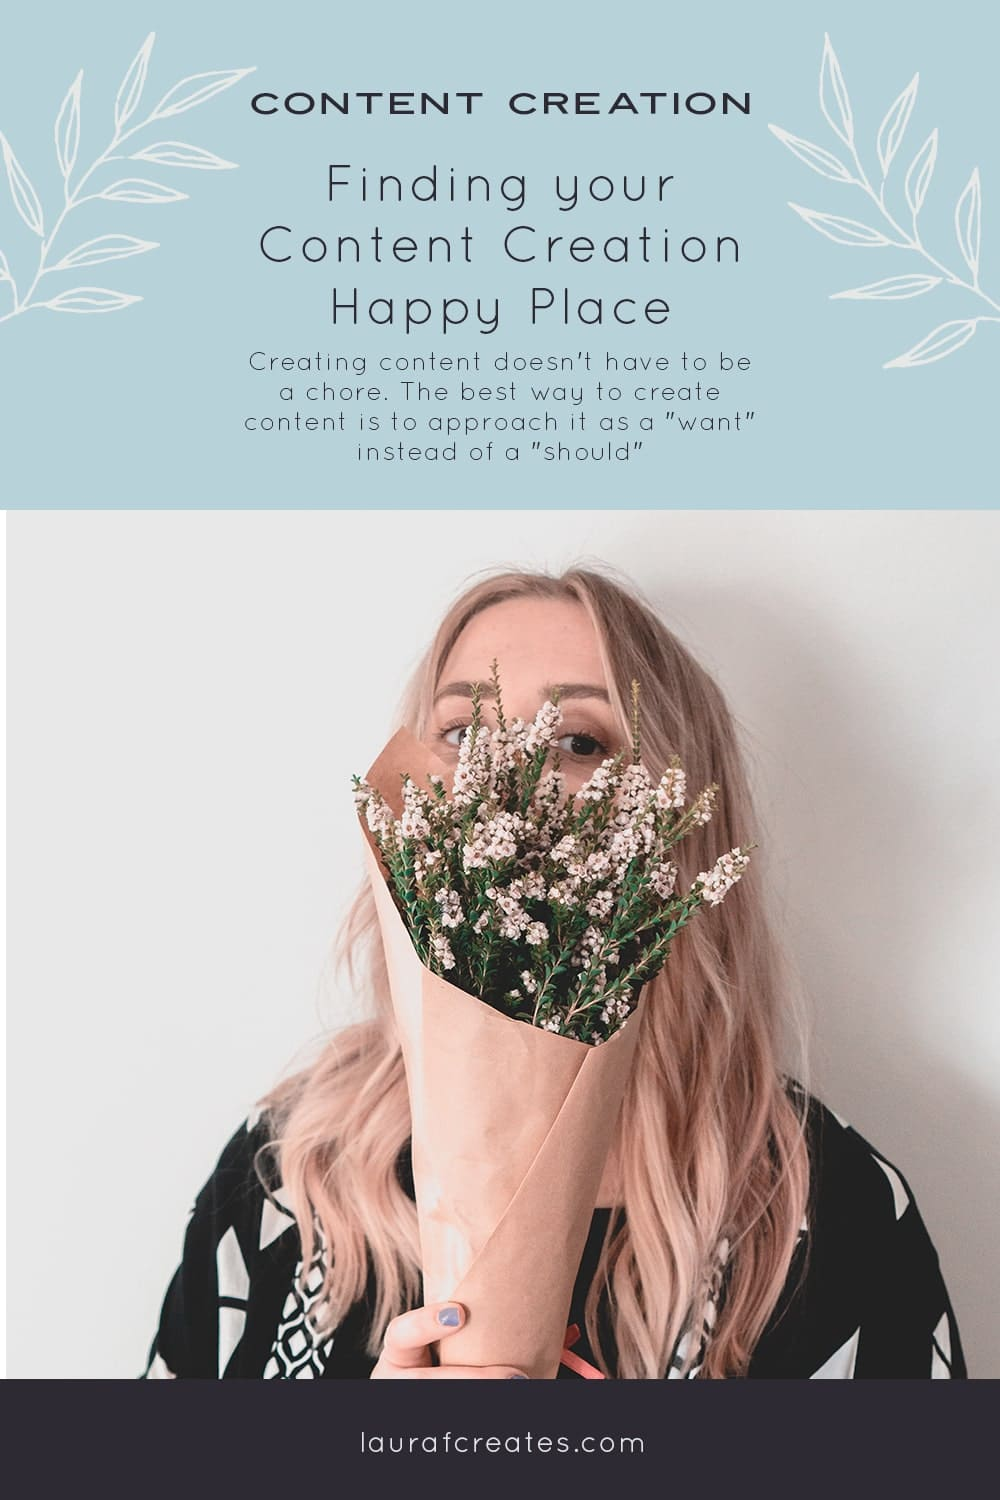 How to find your content creation happy place?